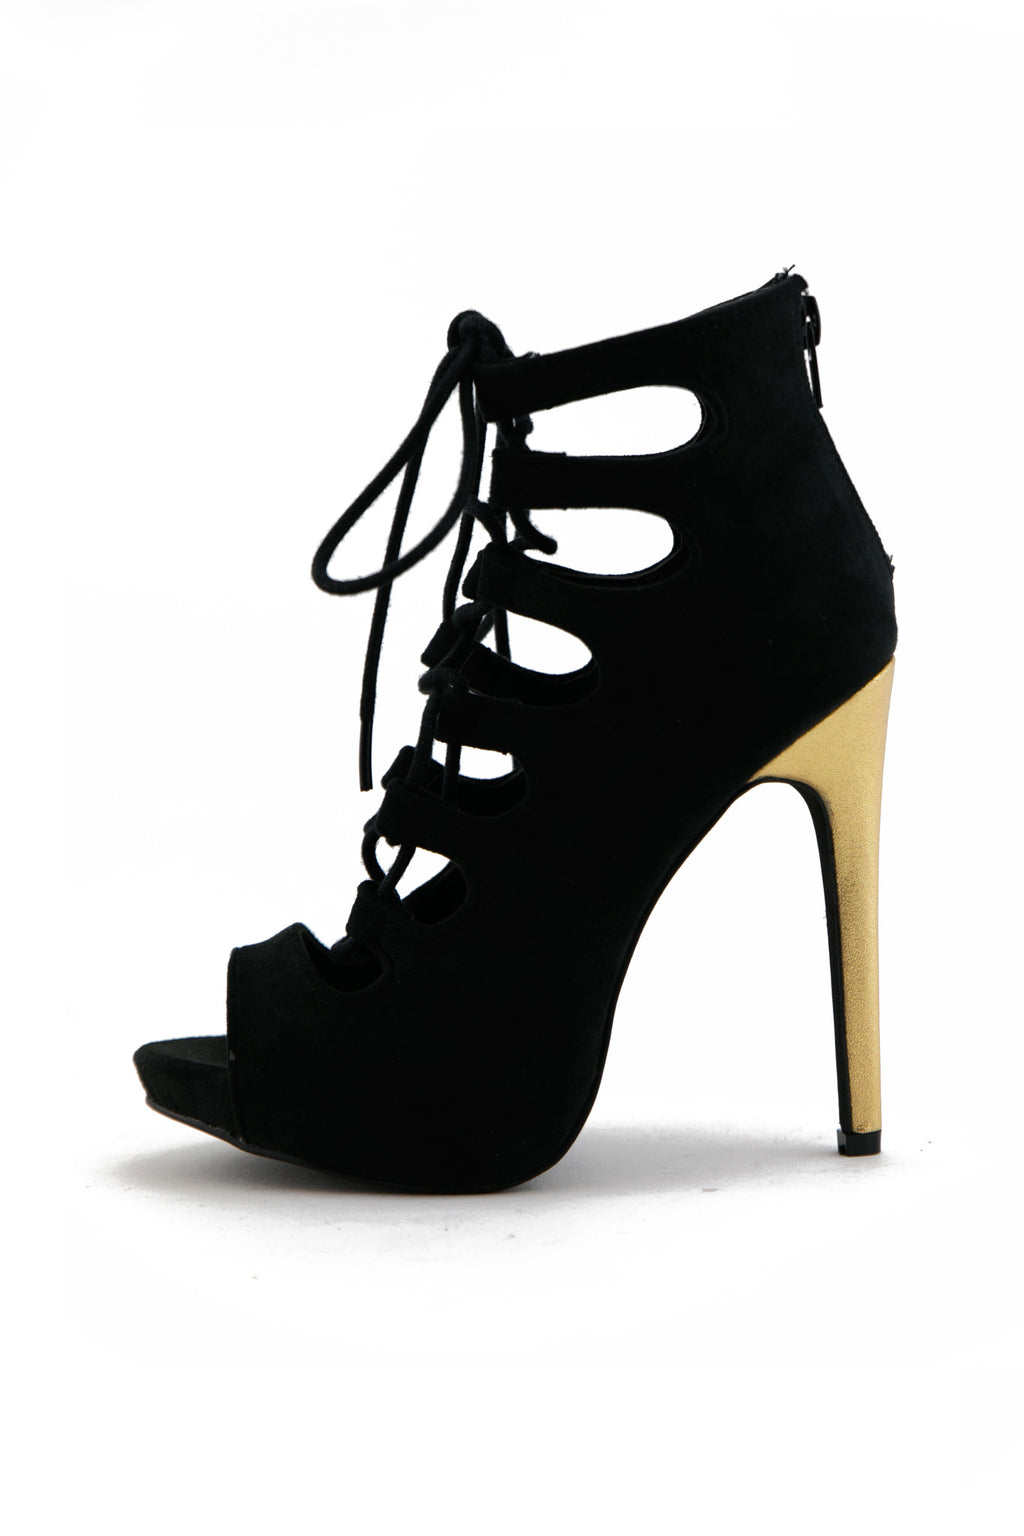 VICTOR CUTOUT LACE-UP BOOTIE HEEL - Haute & Rebellious